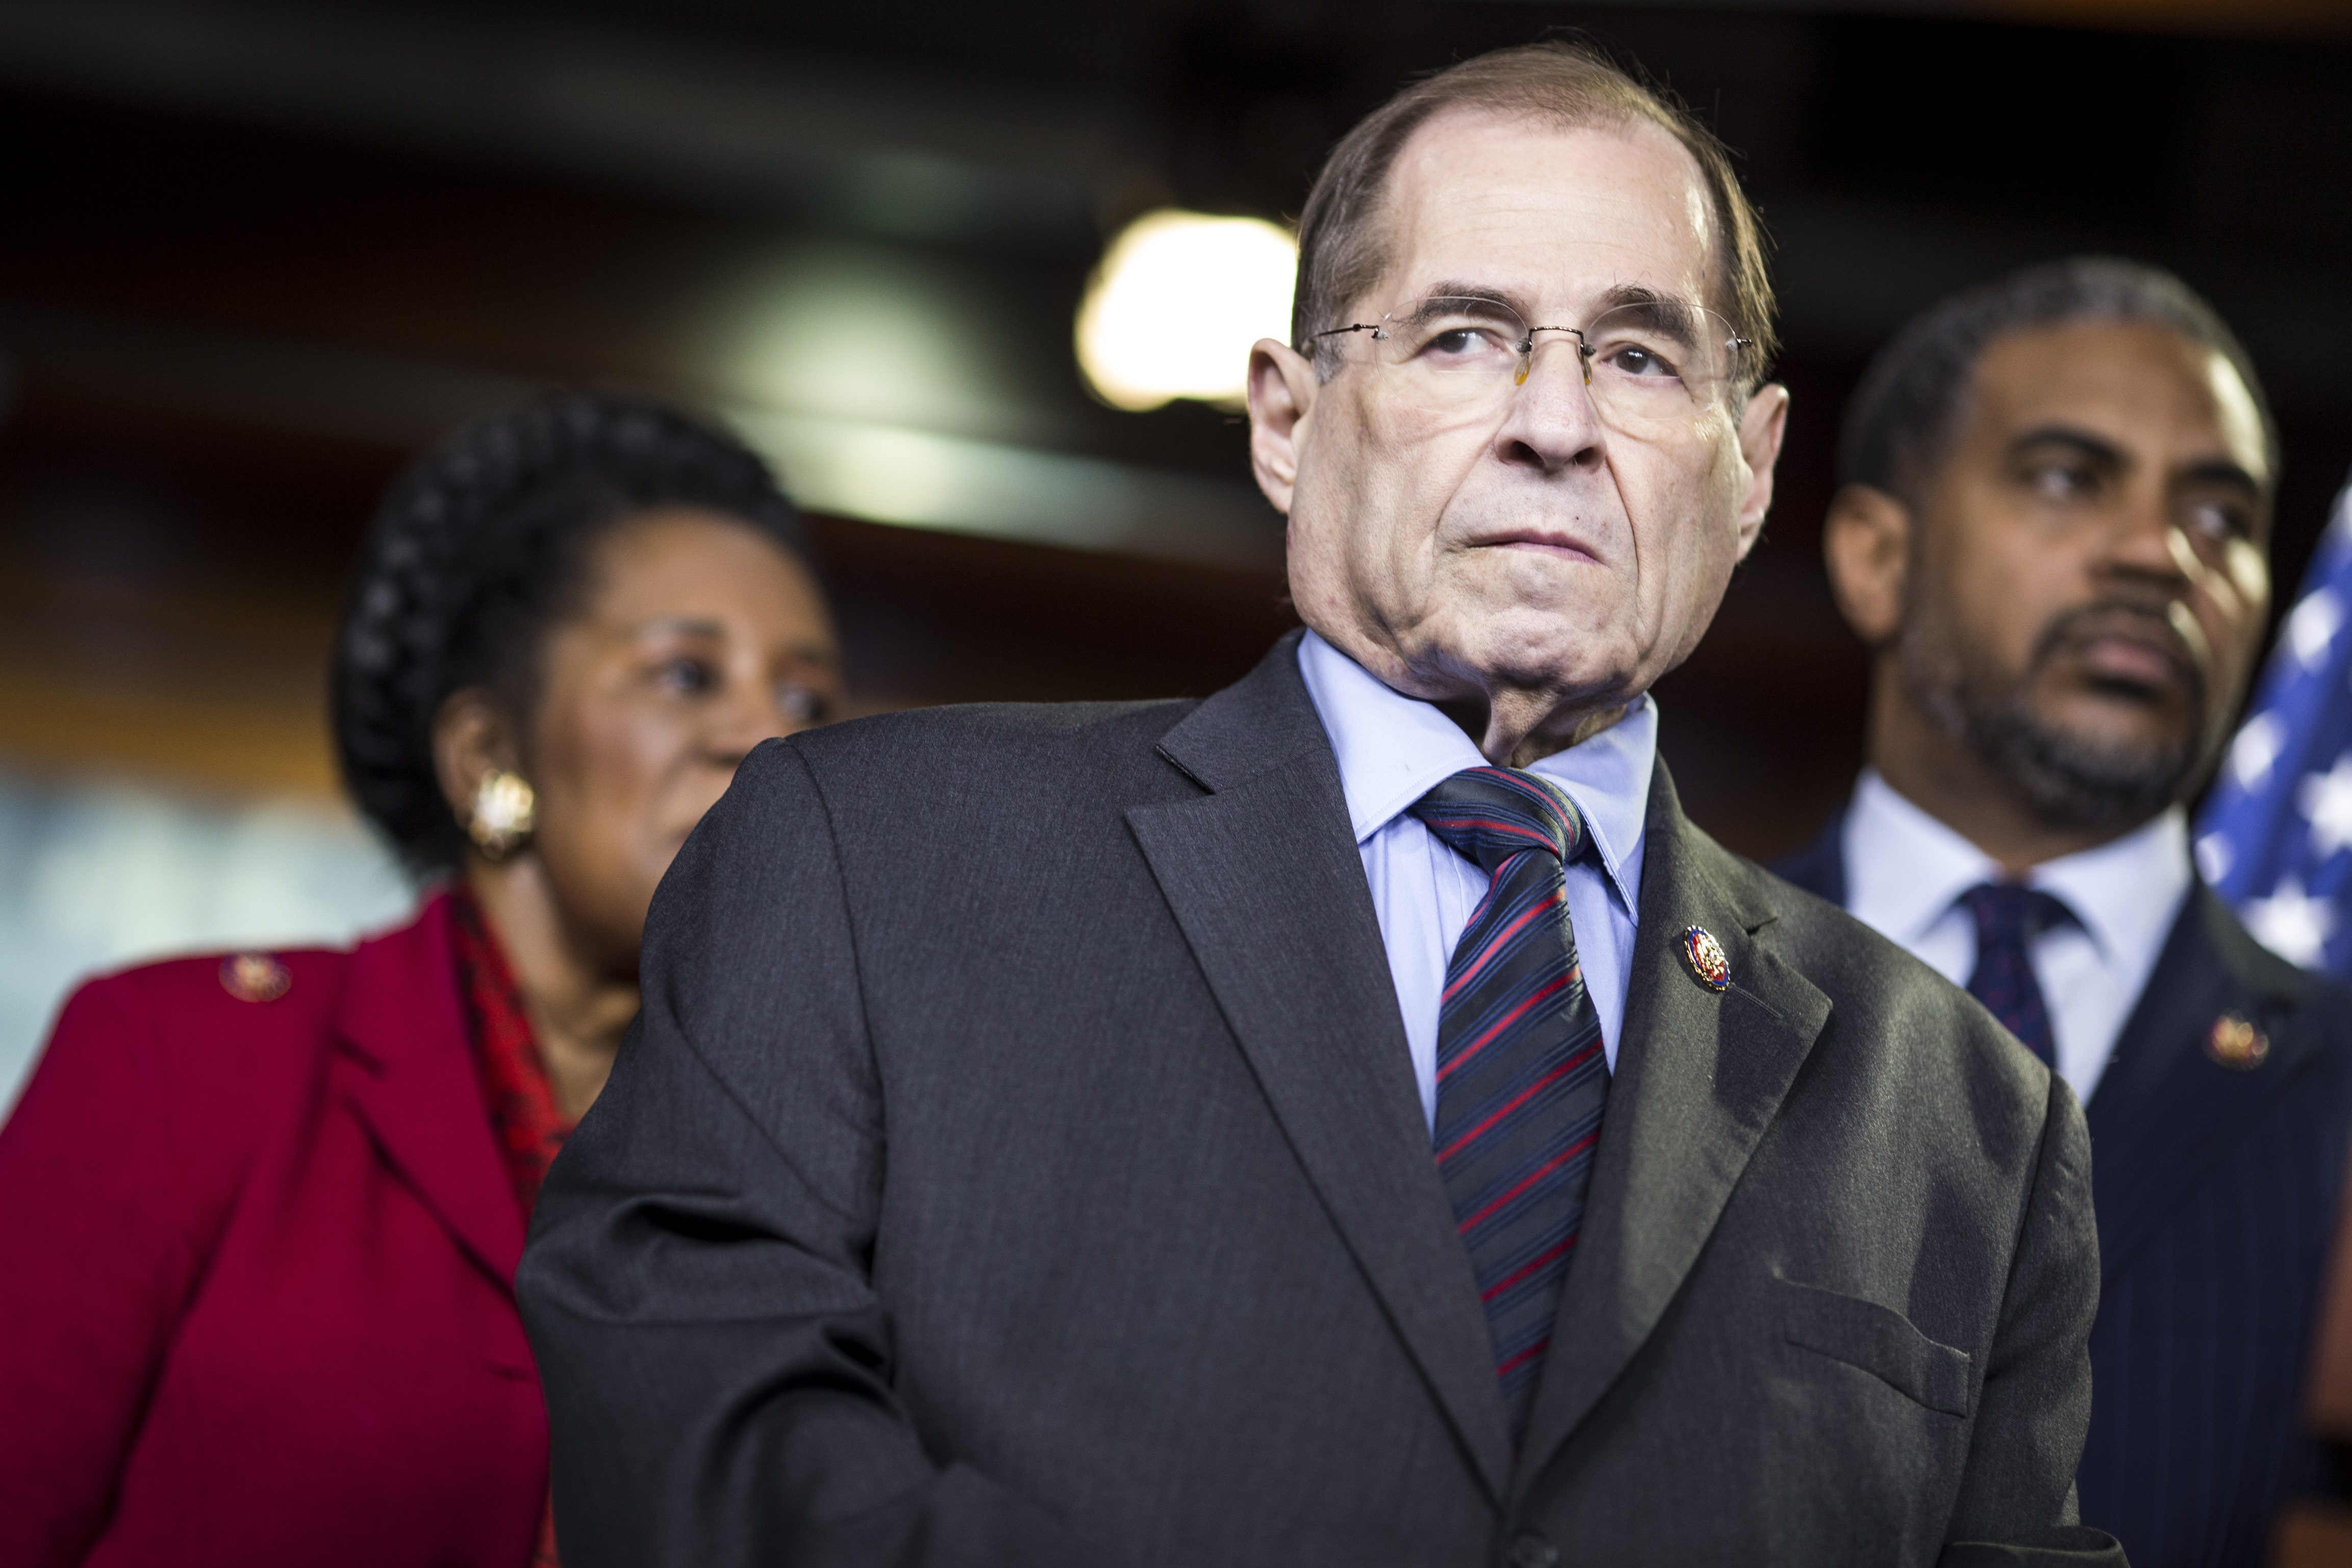 House Judiciary Committee chairman Rep. Jerry Nadler (D-NY) attends a news conference on April 9, 2019. (Zach Gibson/Getty Images)